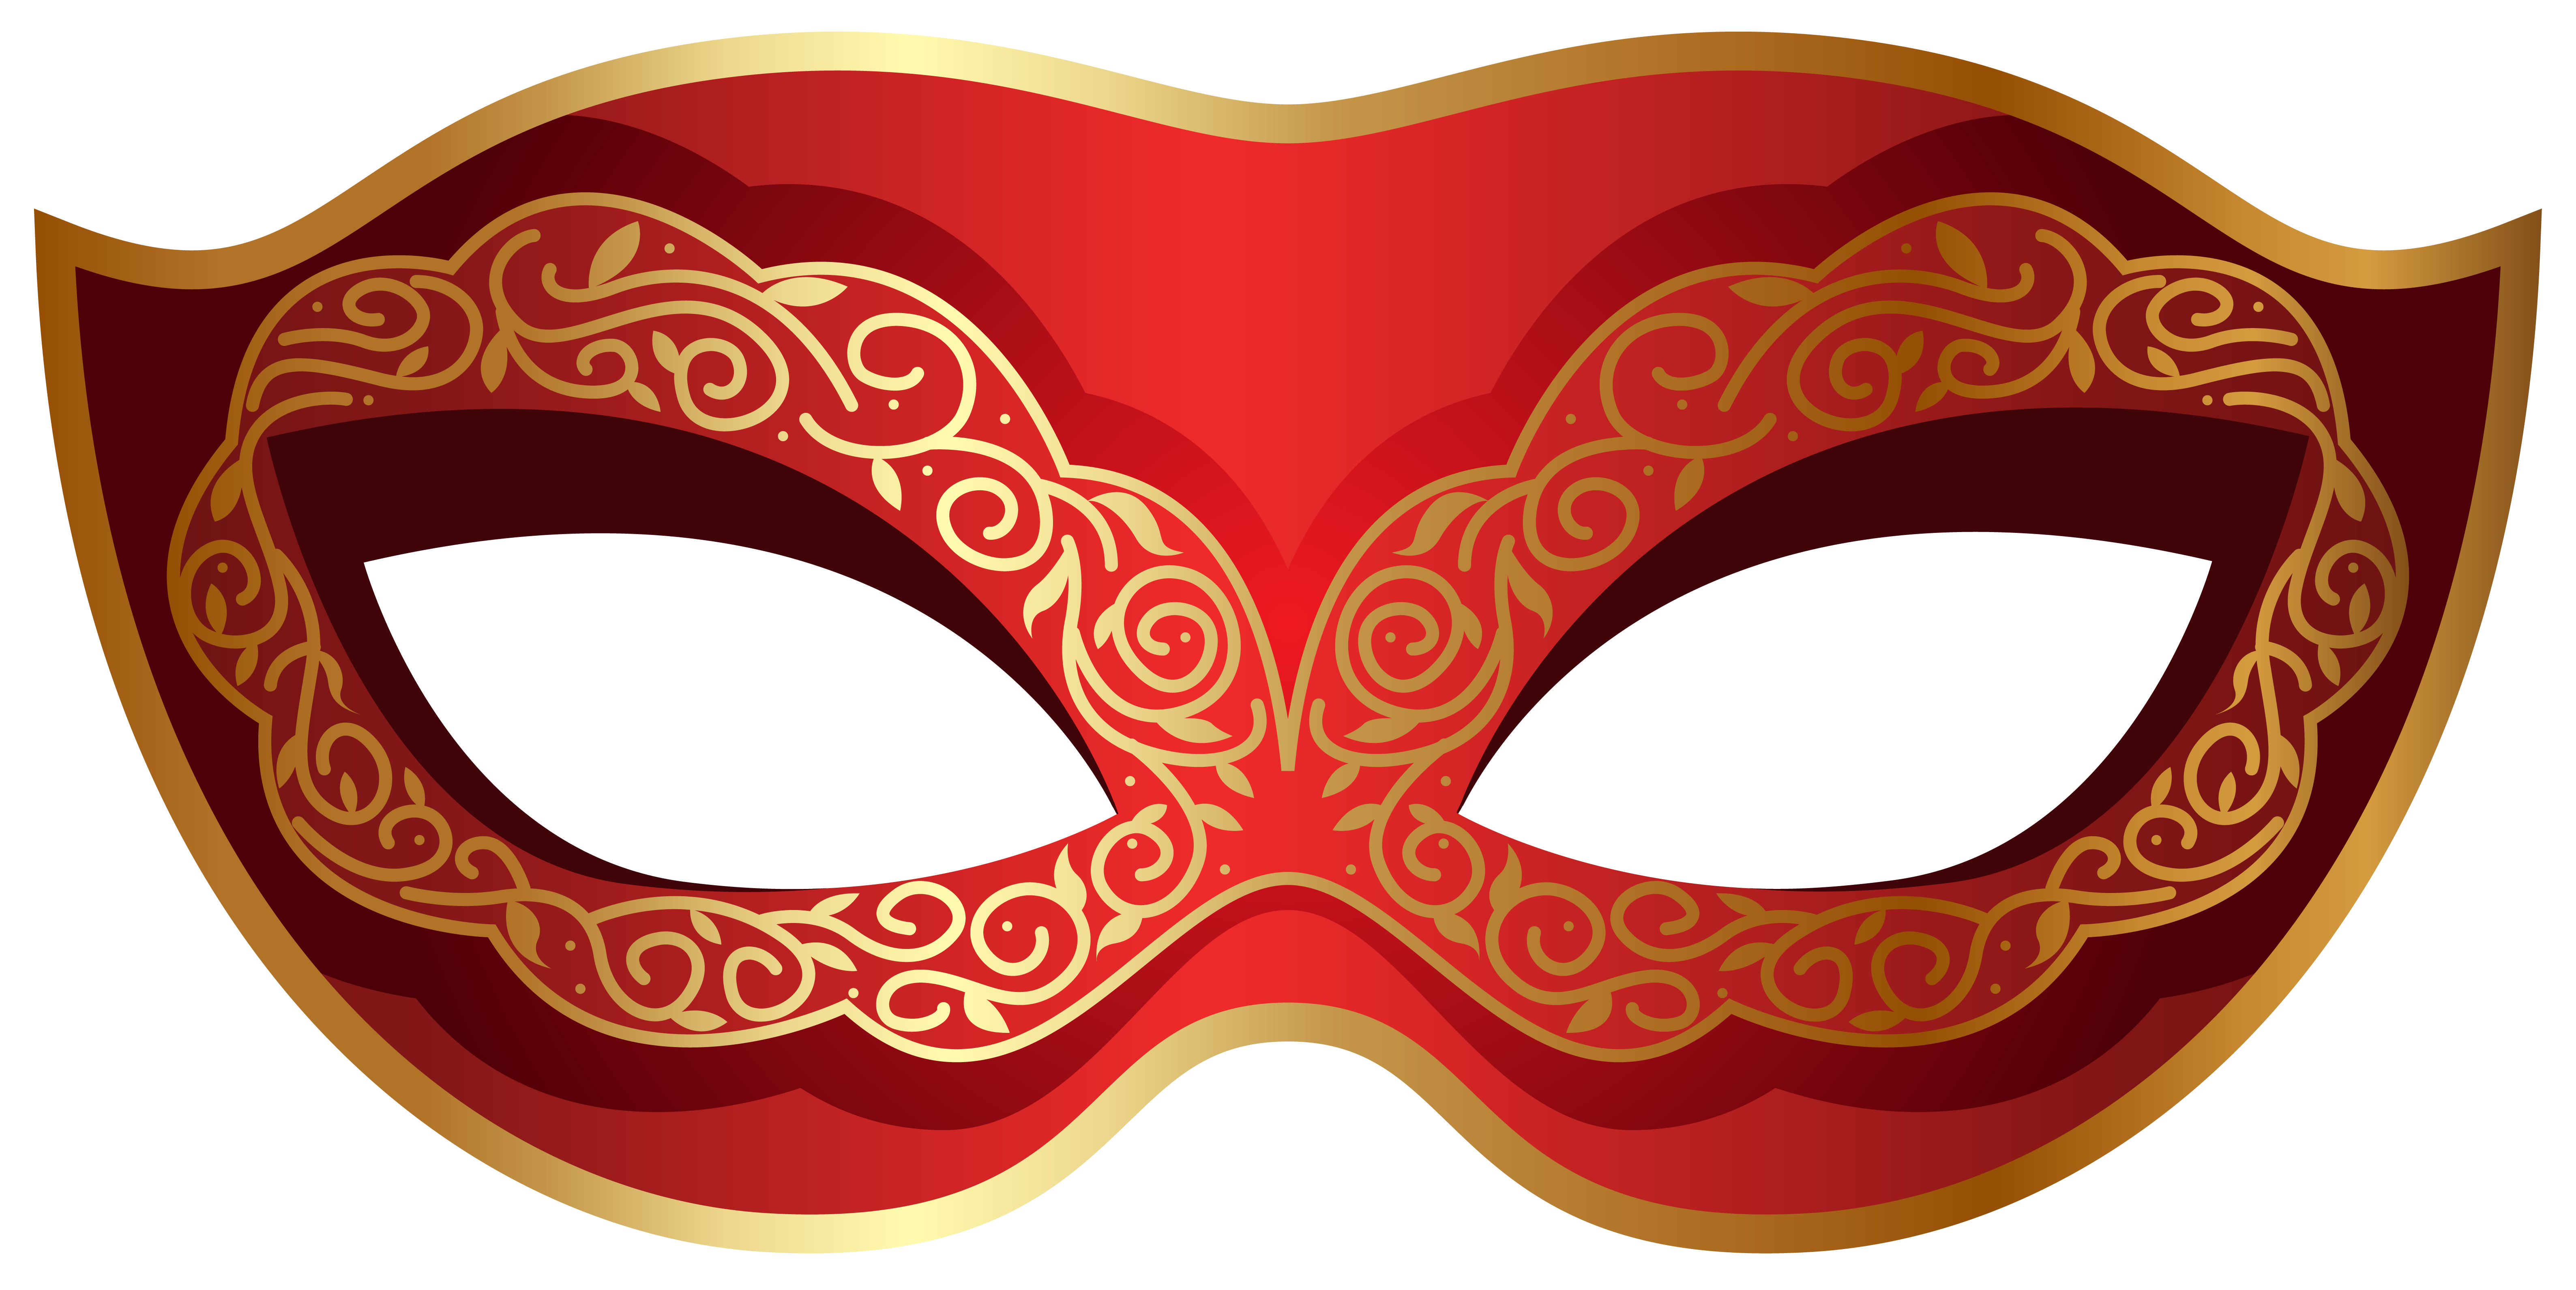 Carnival clipart halloween carnival. Red and gold mask